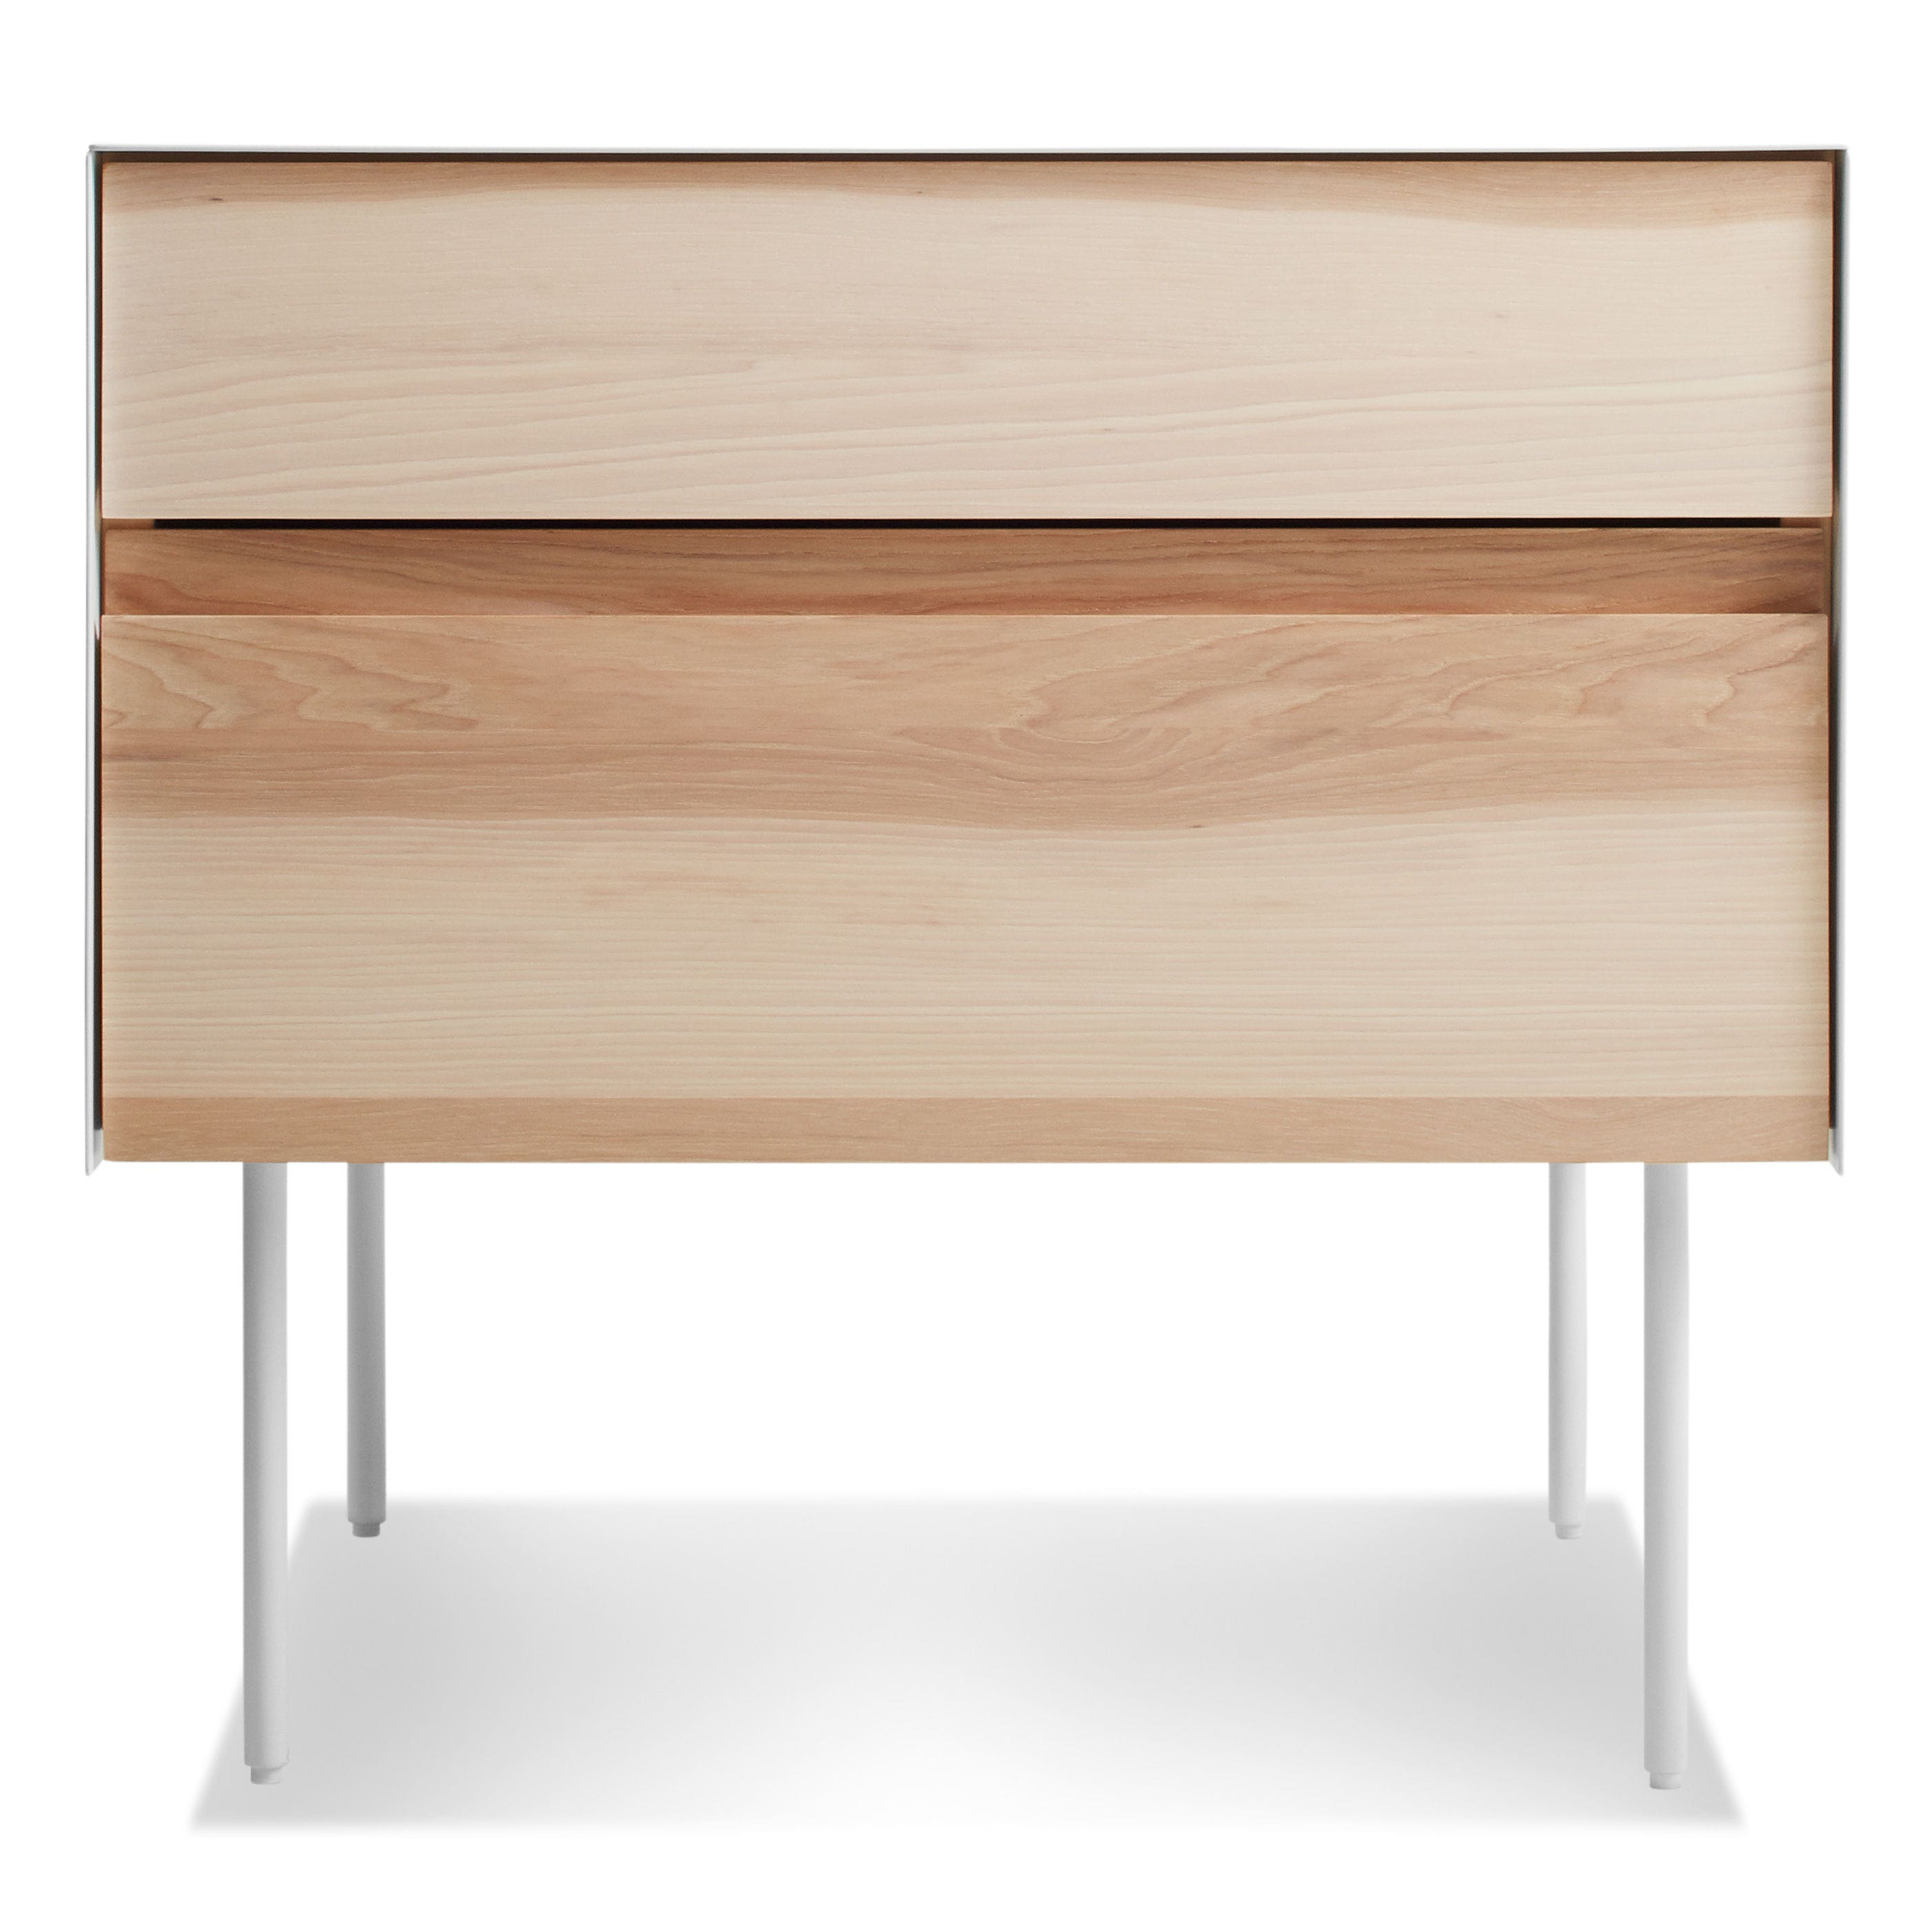 clad nightstand. clad nightstand  modern bedside table  side table  blu dot